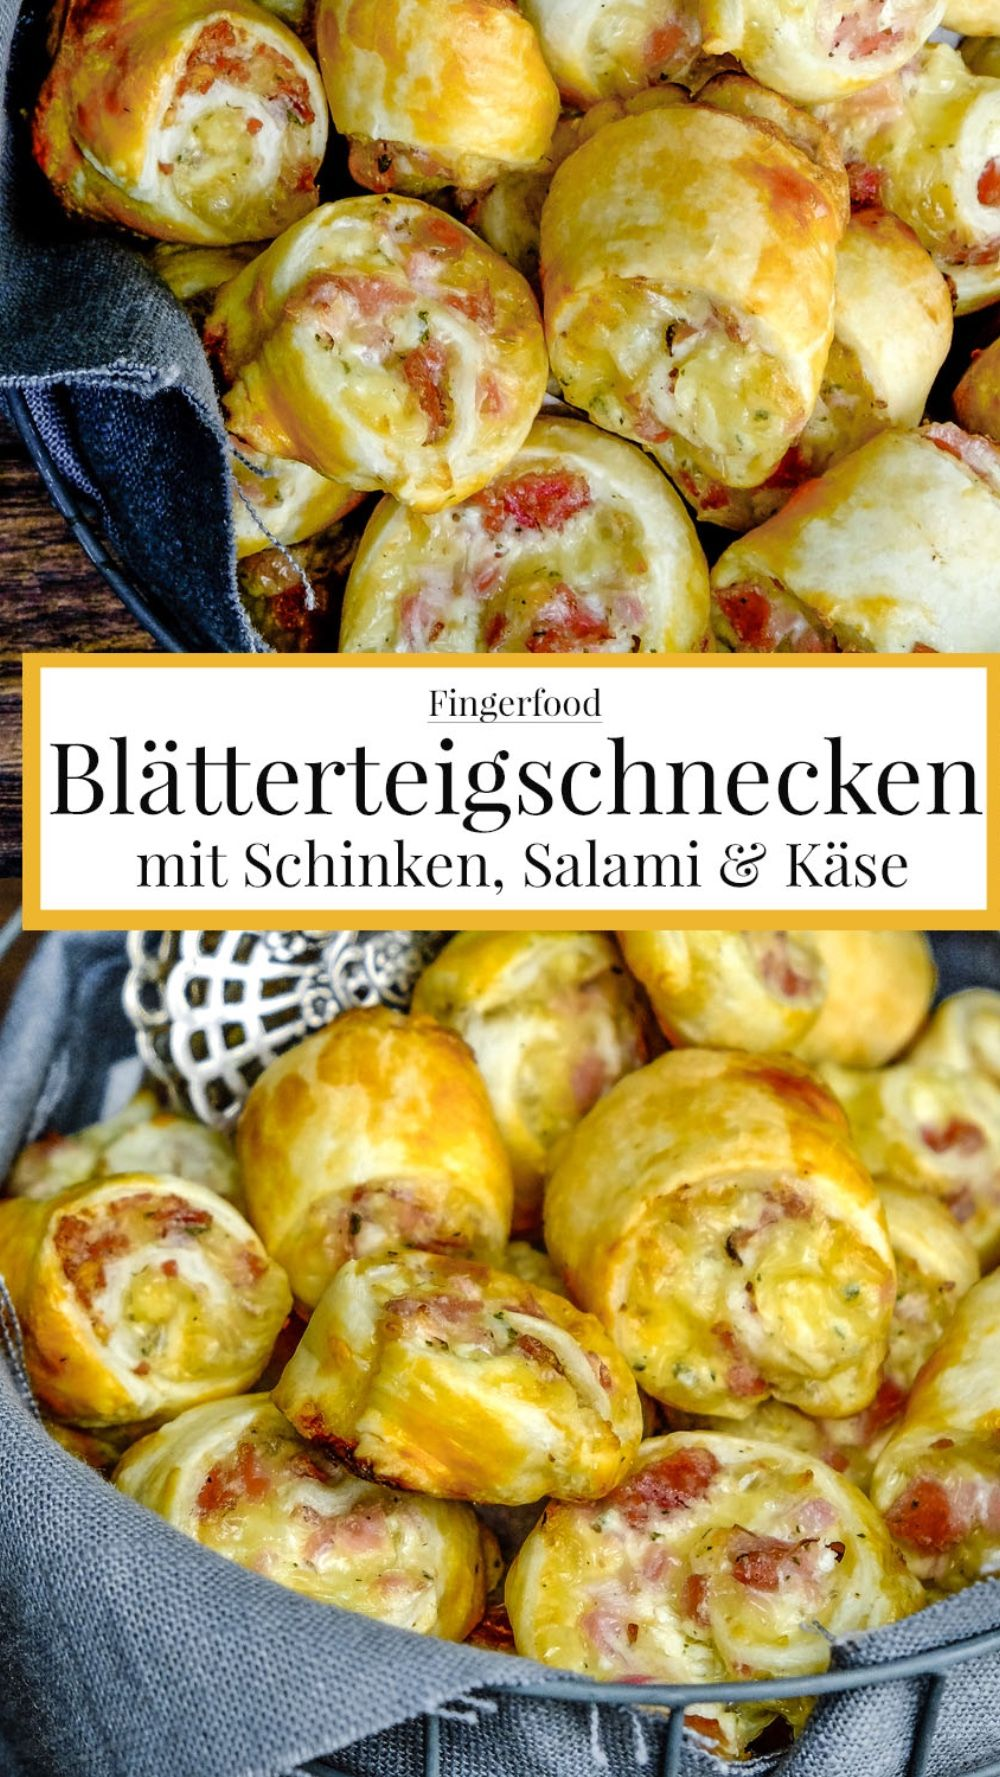 Blätterteigschnecken mit Schinken, Salami & Käse #fingerfoodrezepteschnelleinfach